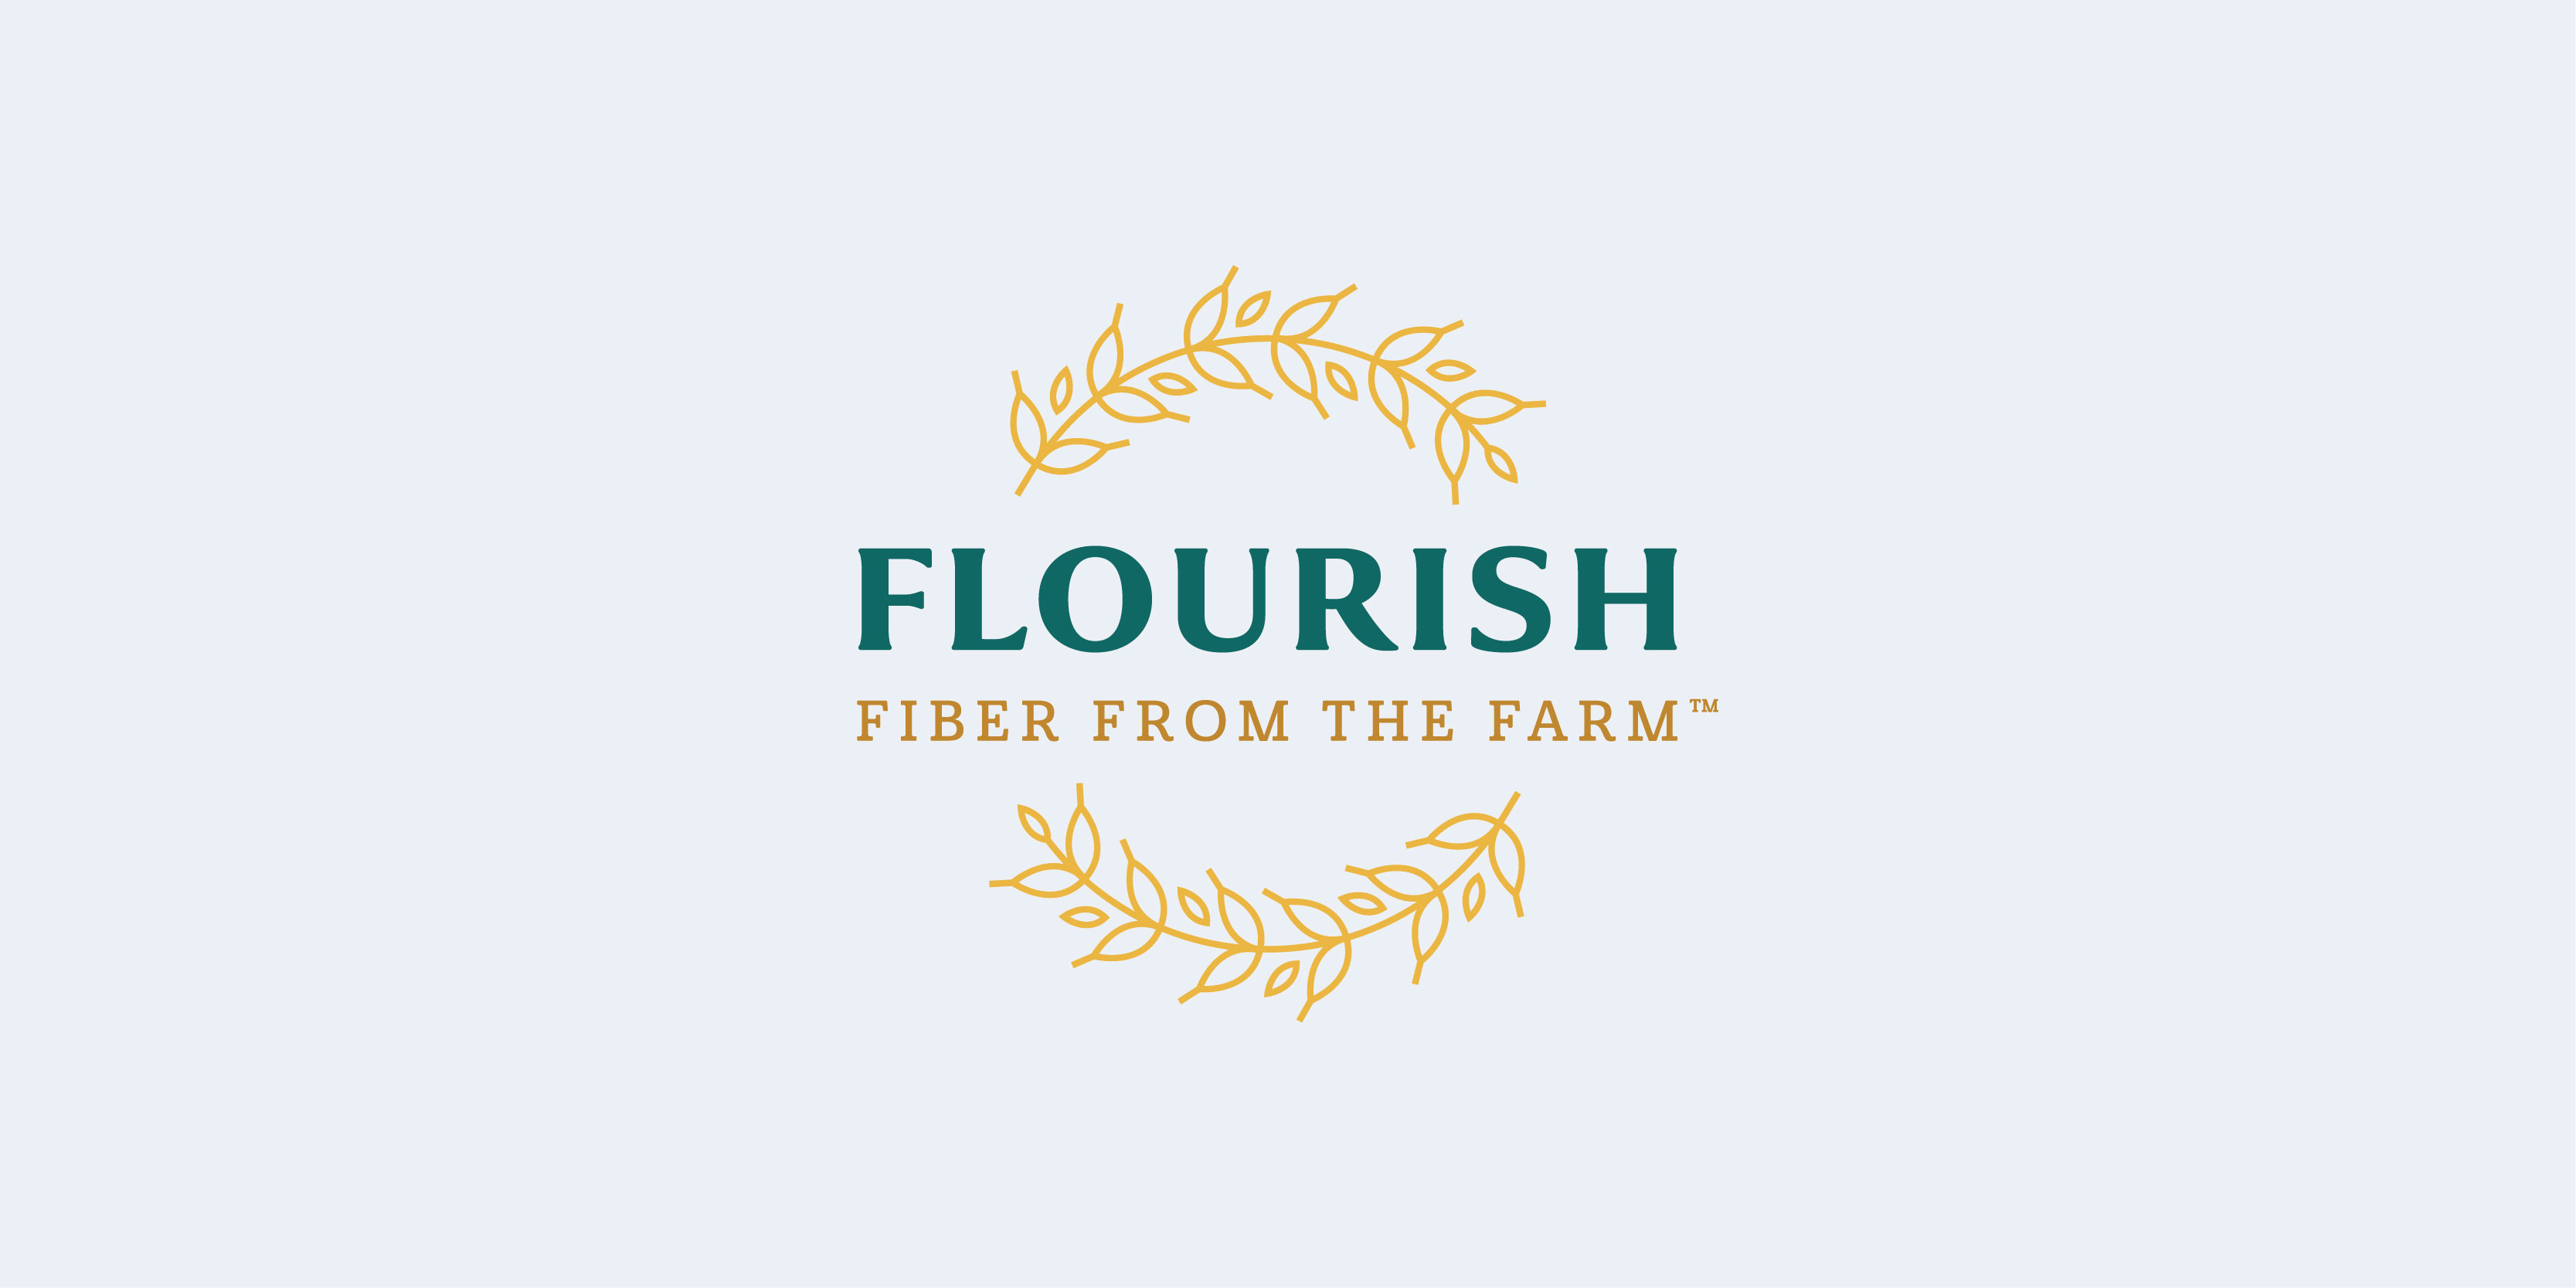 Flourish logo design